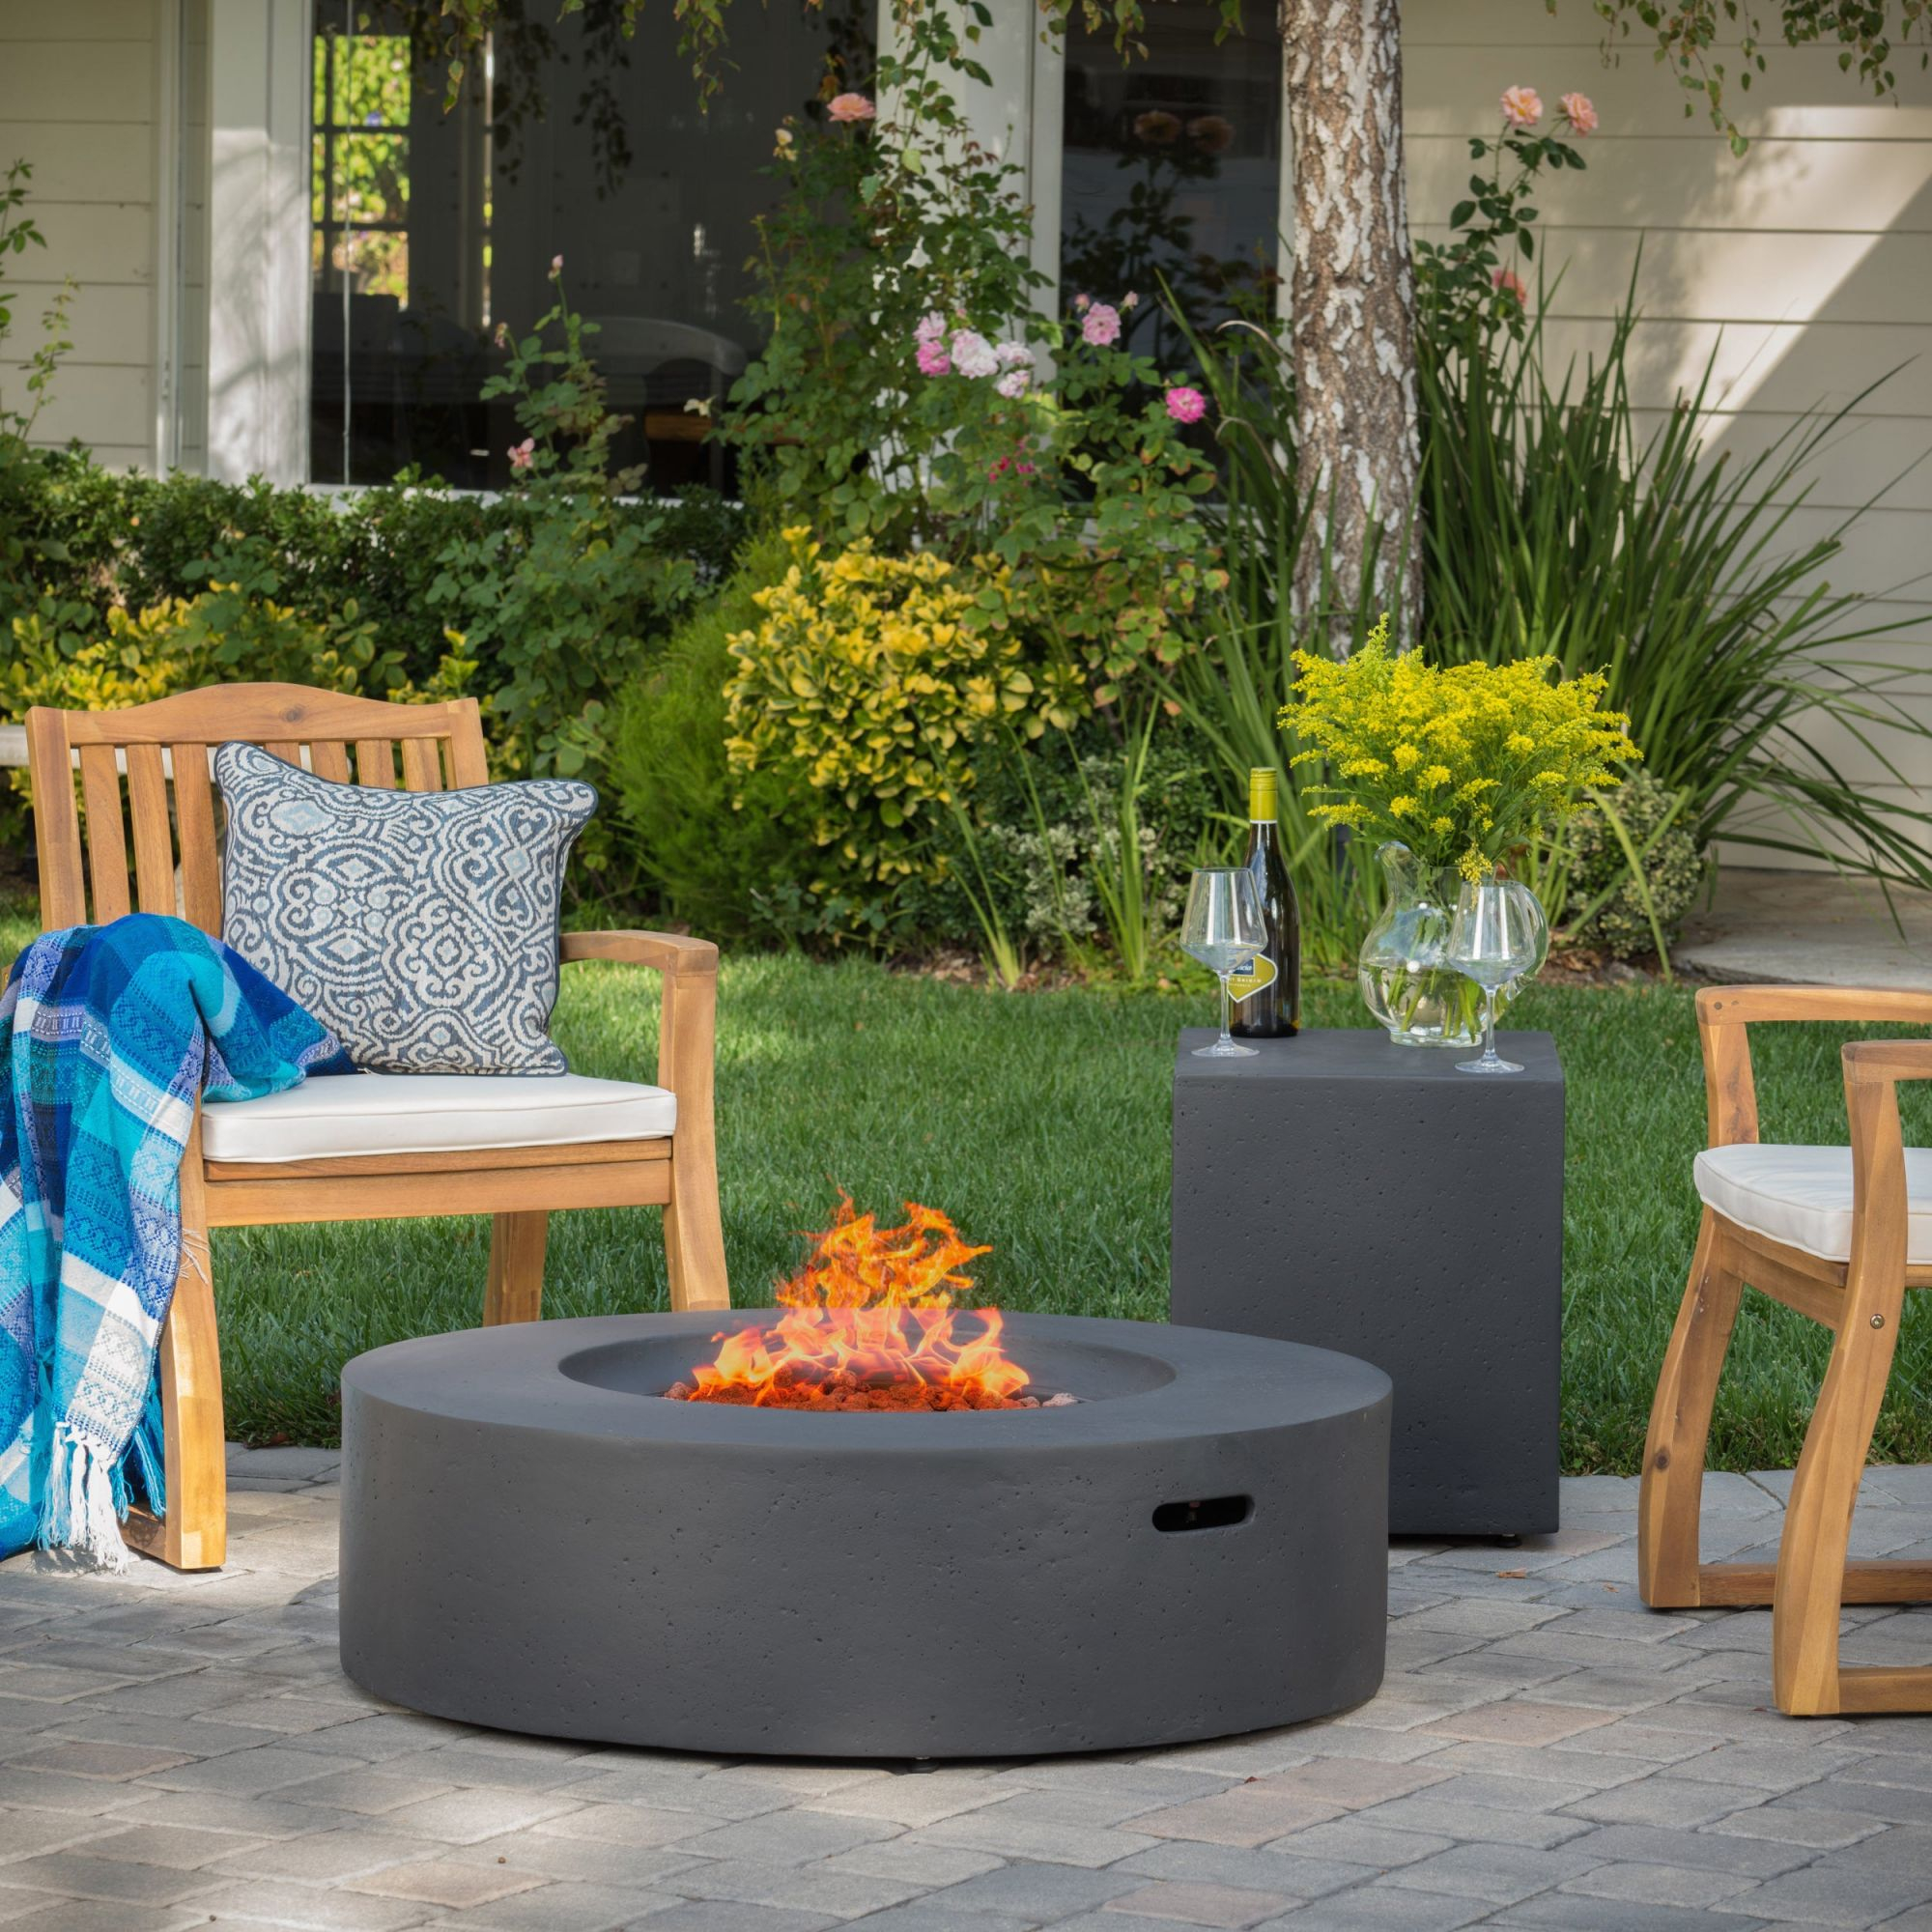 Santos Outdoor Circular Propane Fire Pit Table With Tank Holder intended for Lovely Outdoor Propane Fire Pit